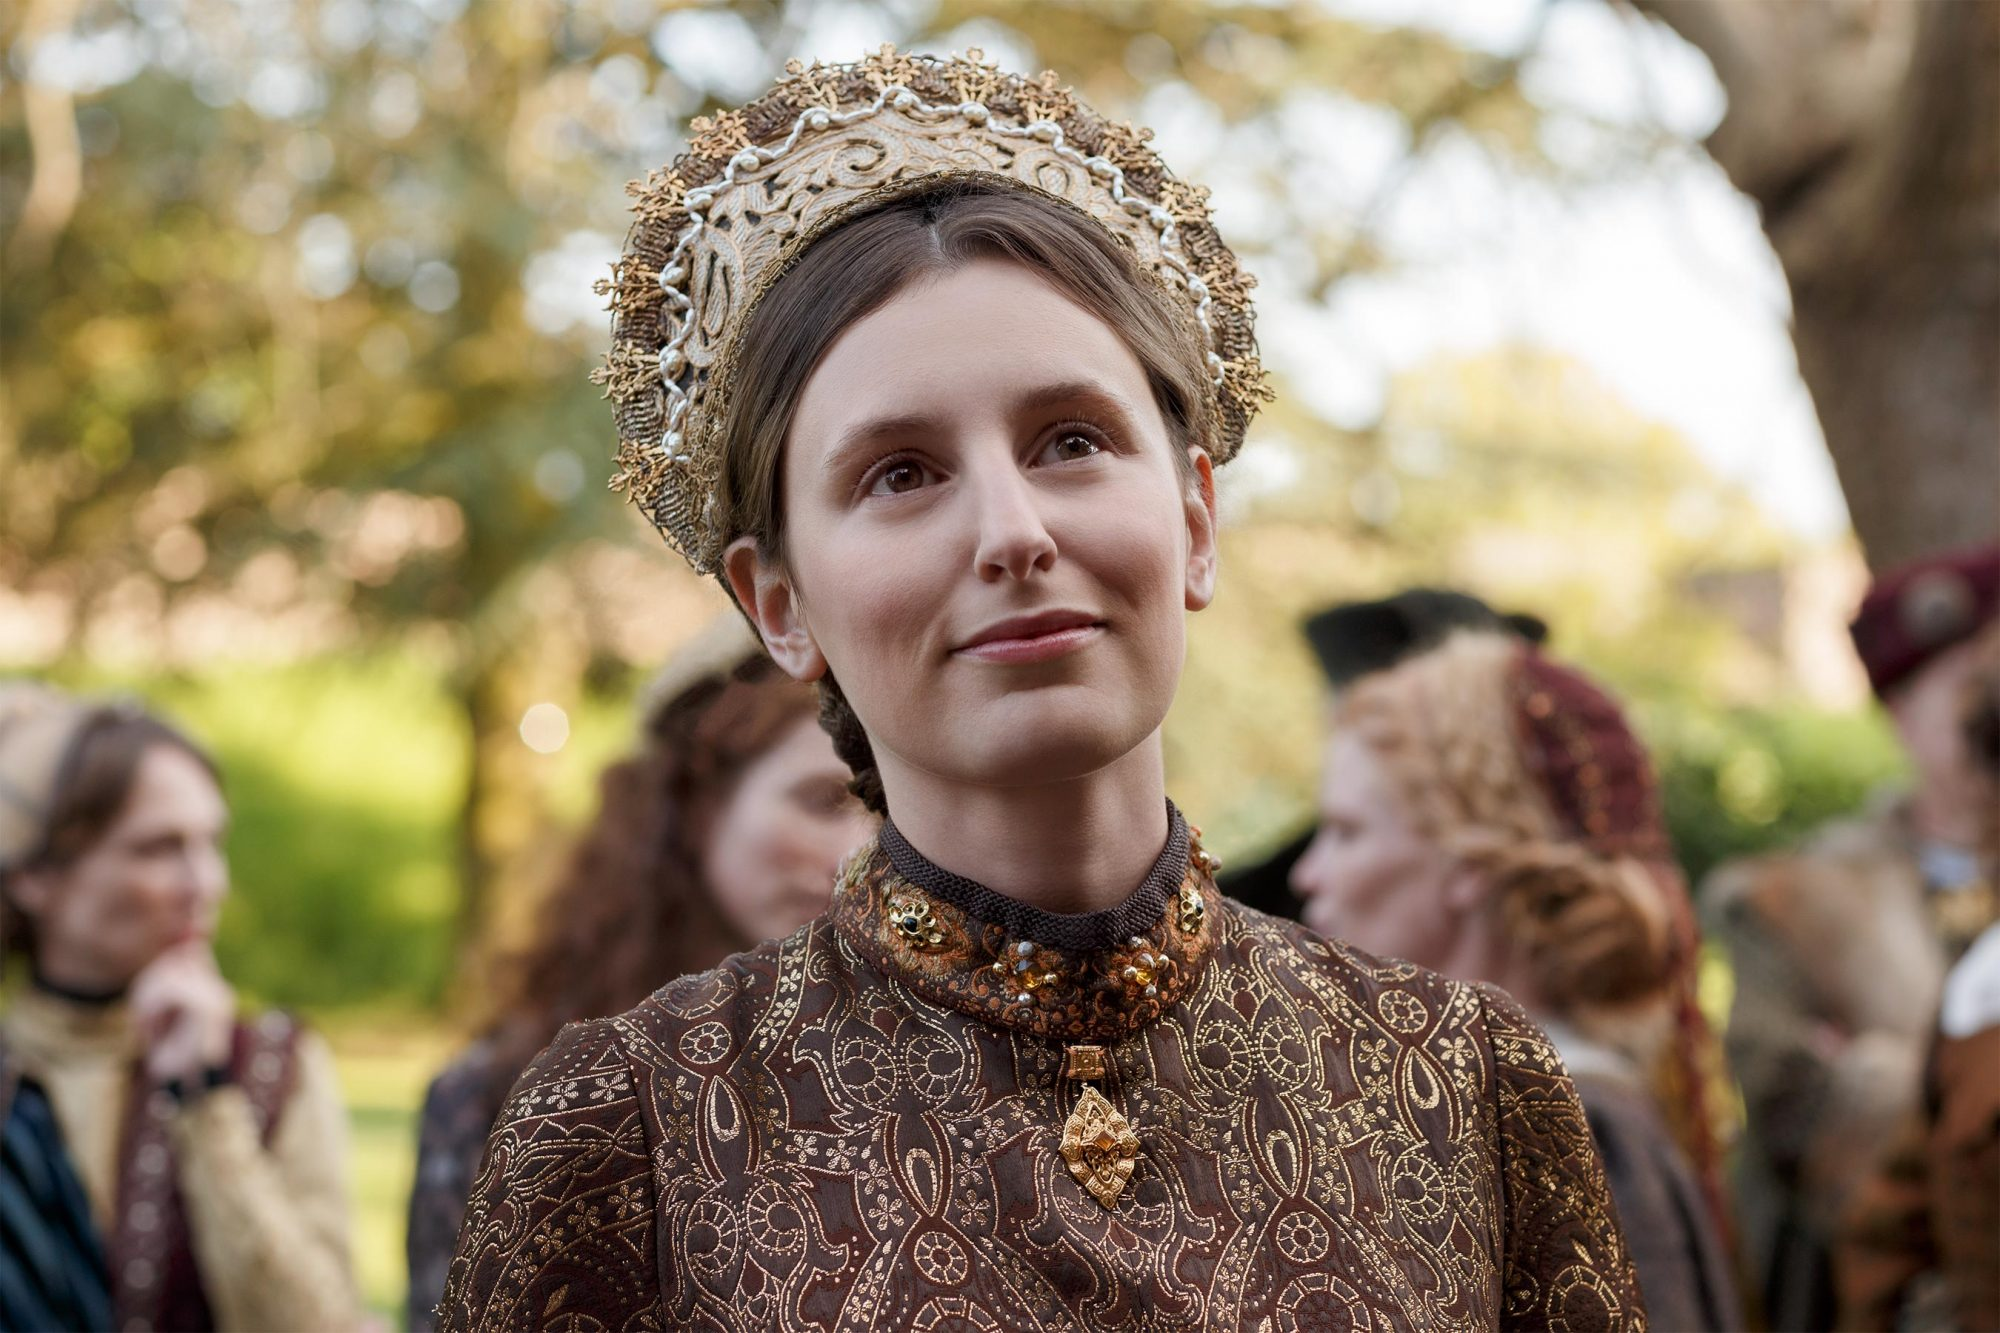 The Spanish Princess Laura Carmichael CR: Nick Briggs/Starz